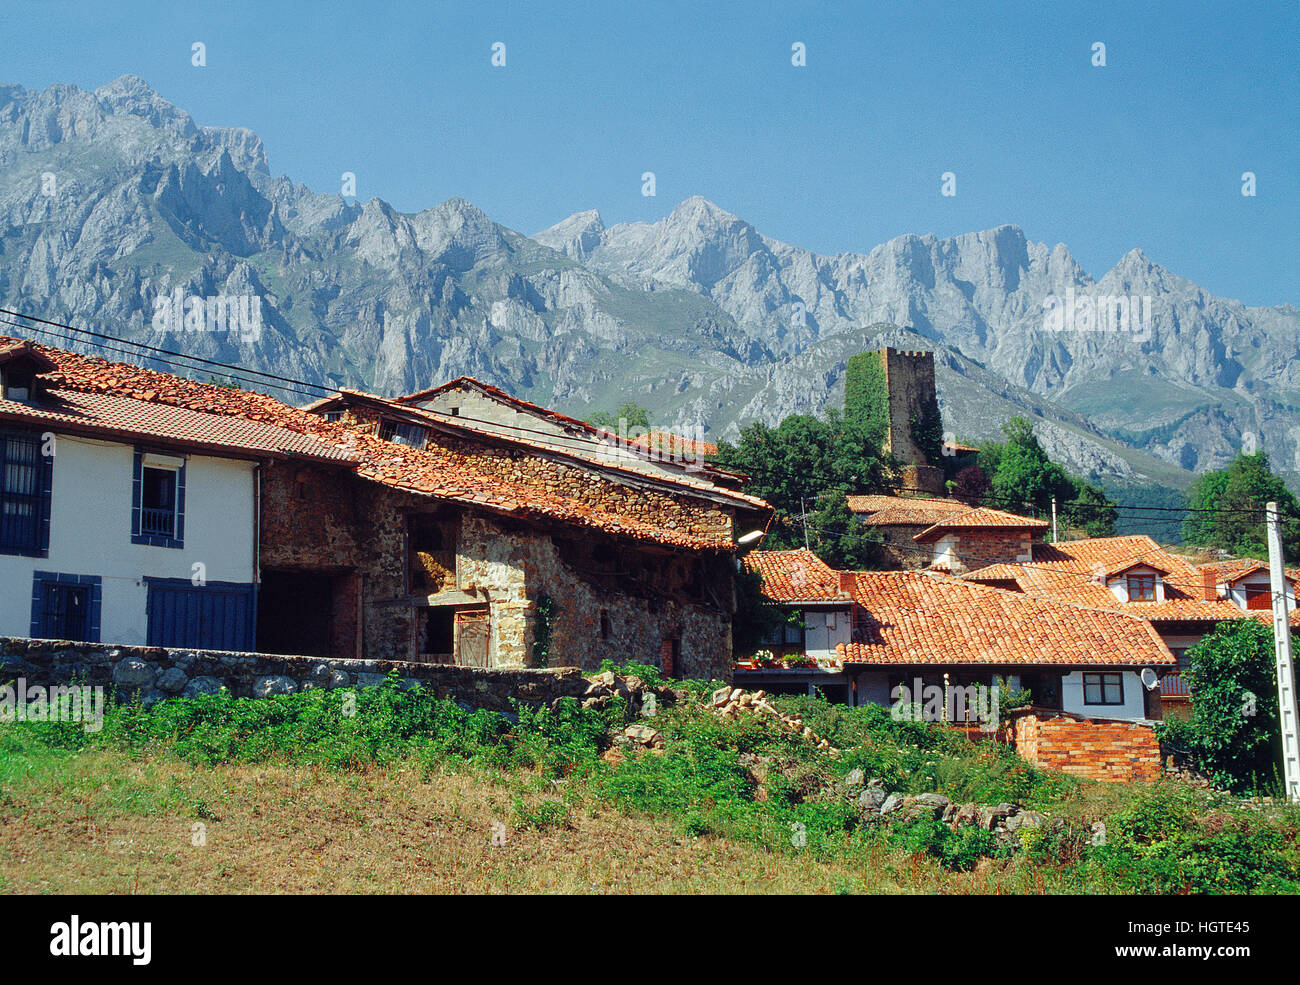 Mogrovejo and PIcos de Europa National Park. Cantabria, Spain. - Stock Image